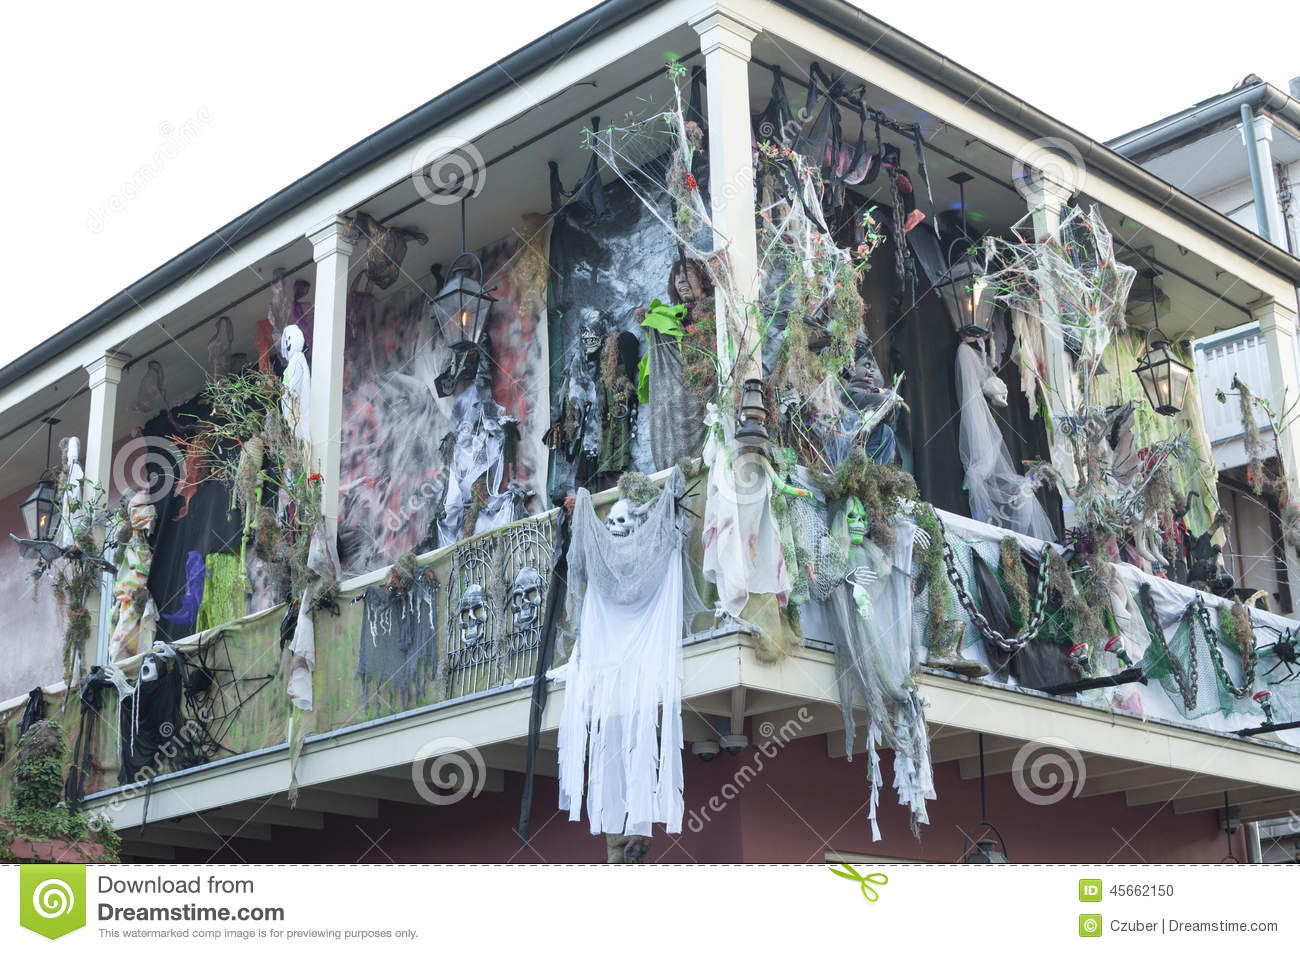 haunted halloween decorations on bourbon street editorial. Black Bedroom Furniture Sets. Home Design Ideas